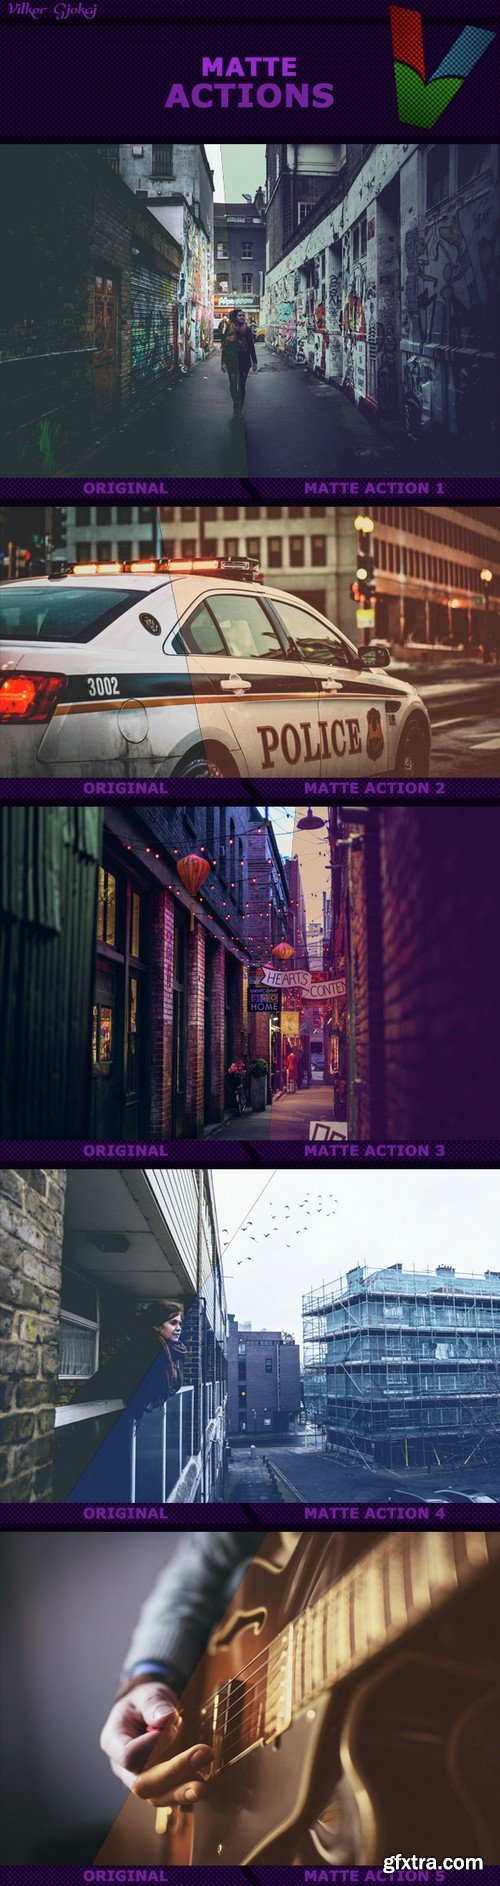 Graphicriver - Matte Actions I 14849273